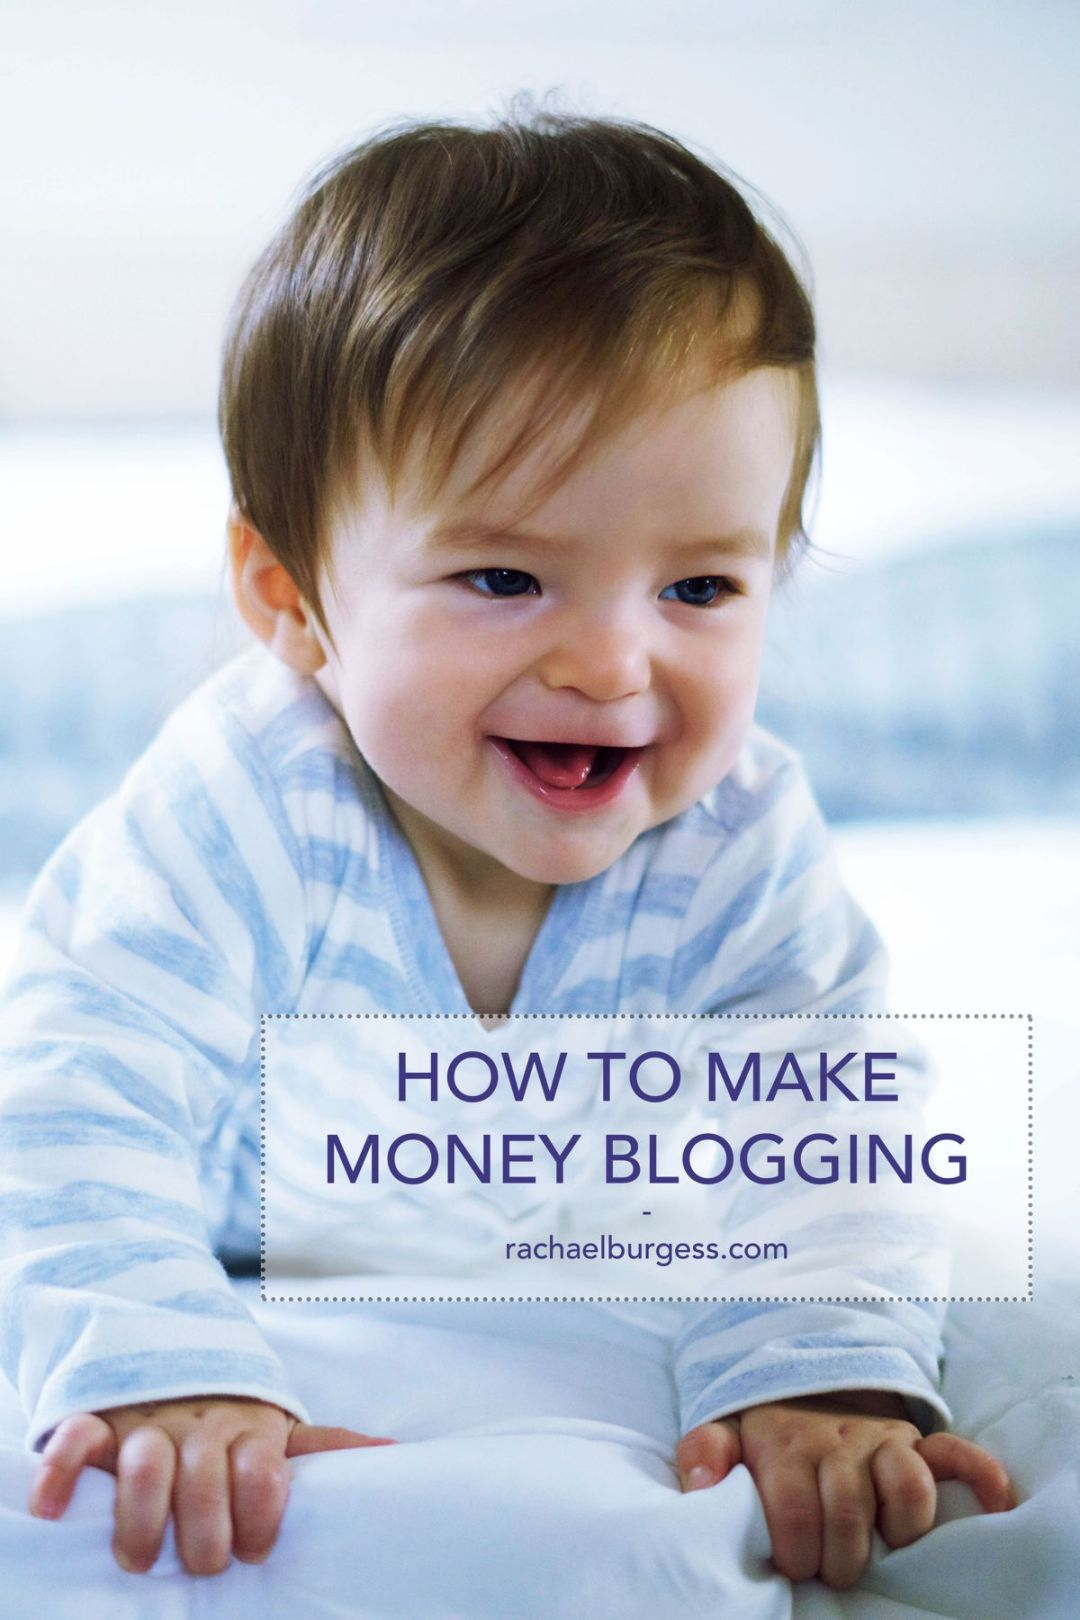 Make Money Blogging | How to Monetize Your Blog & Why Bloggers Keep it Secret by Rachael Burgess